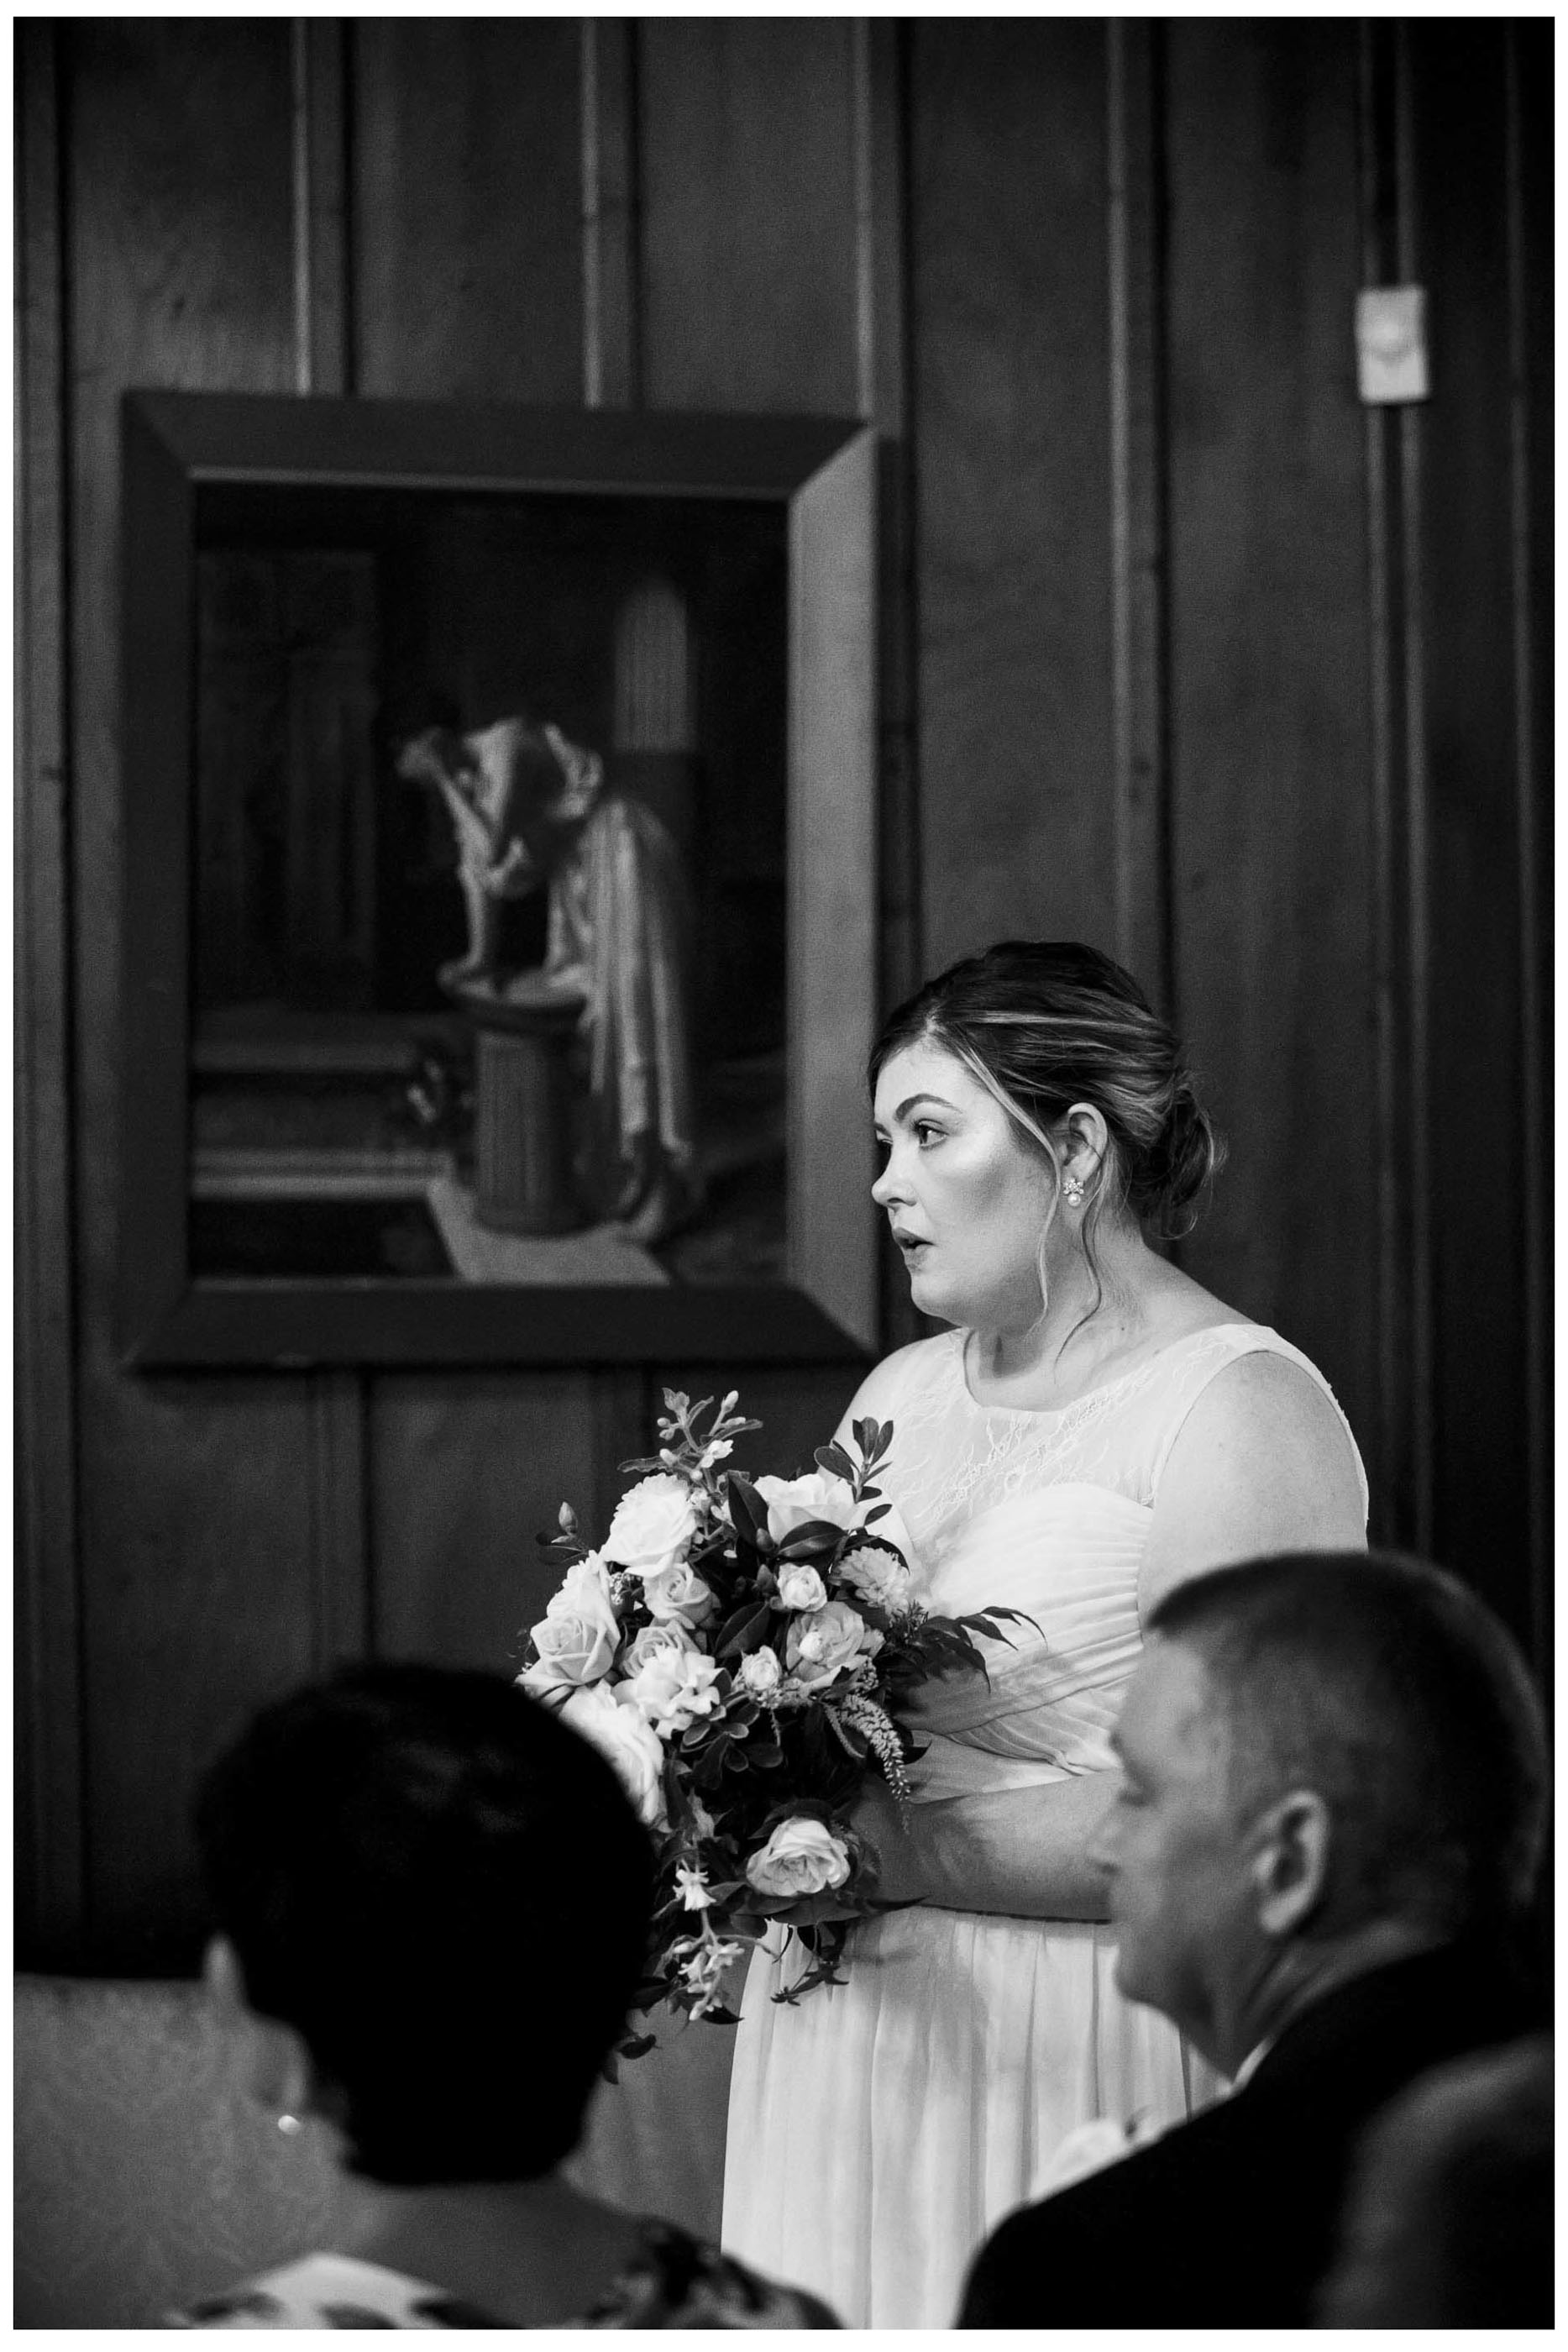 wedding aHighwic House Aucklnd Auckland by Chris Loufte www.thyeweddingphotographer.co.nz